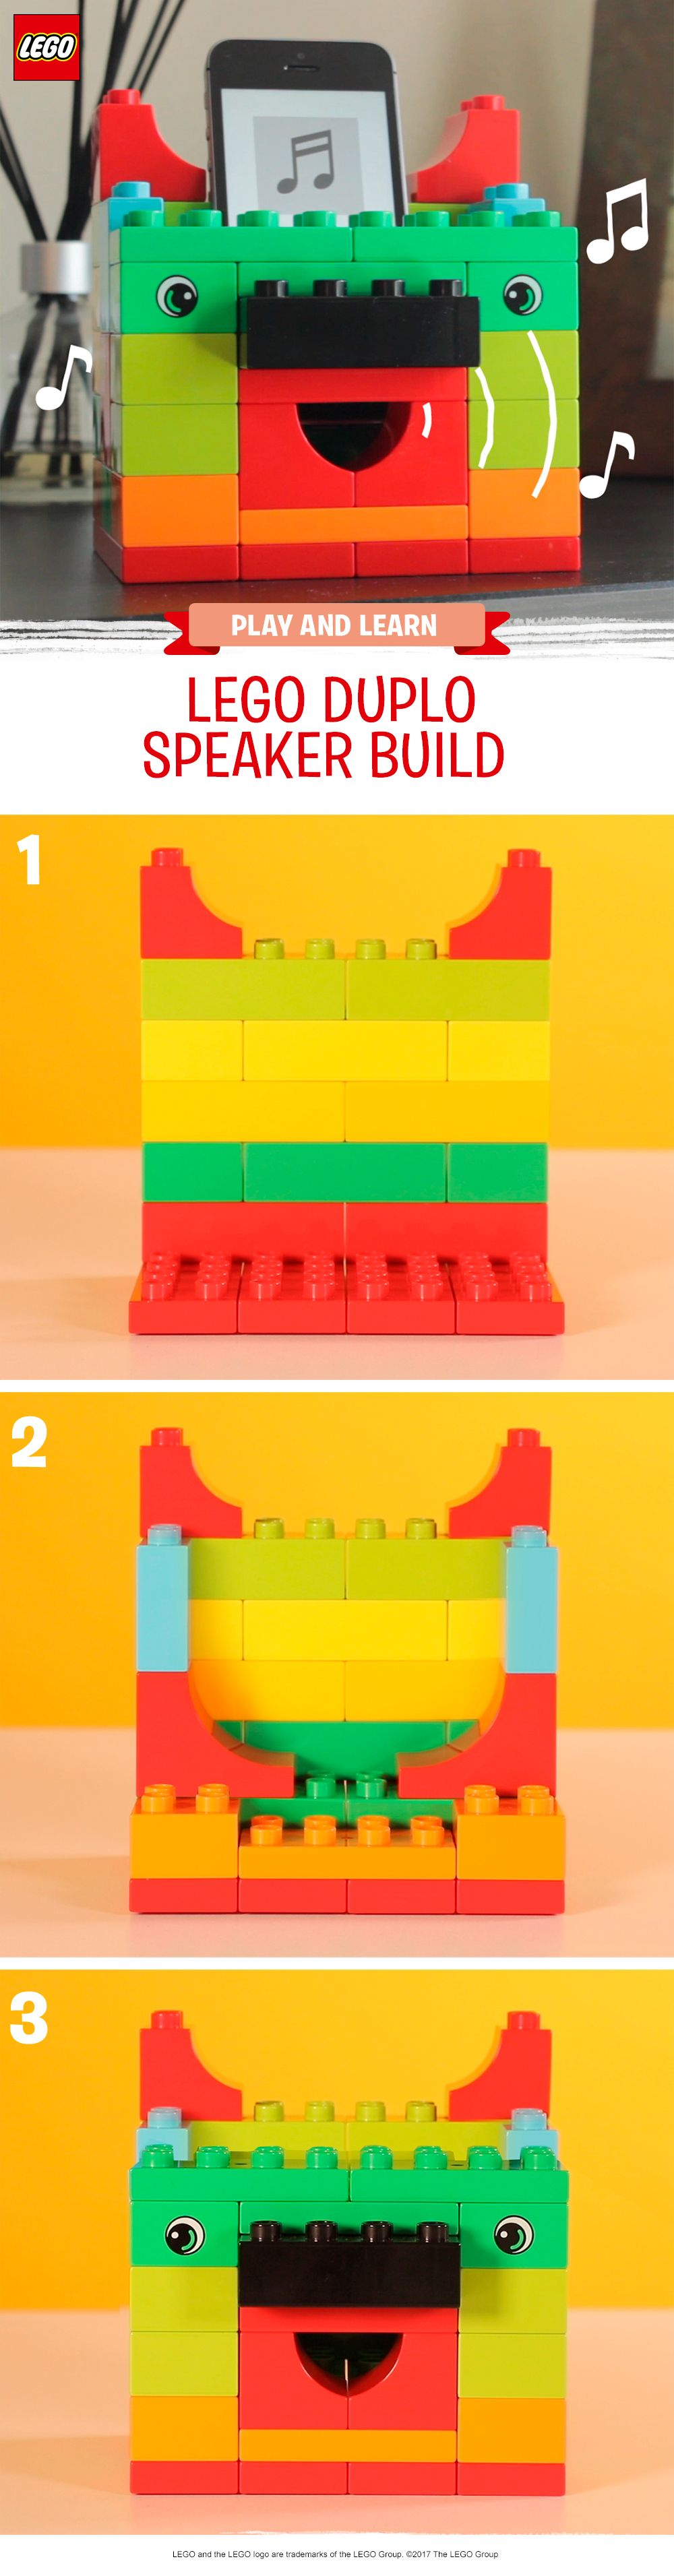 Did you know you can build an amplifier for your cell phone using LEGO DUPLO bricks? This is a fun STEM experiment for children, where they can start to learn about sound waves. Create a box out of LEGO DUPLO bricks, turn on some music and let your pre-schooler hear how the sound gets louder when you put the phone in the box. Make different shaped speakers and try to see which shape makes the loudest sound. Then, of course, make sure you have a dance party!